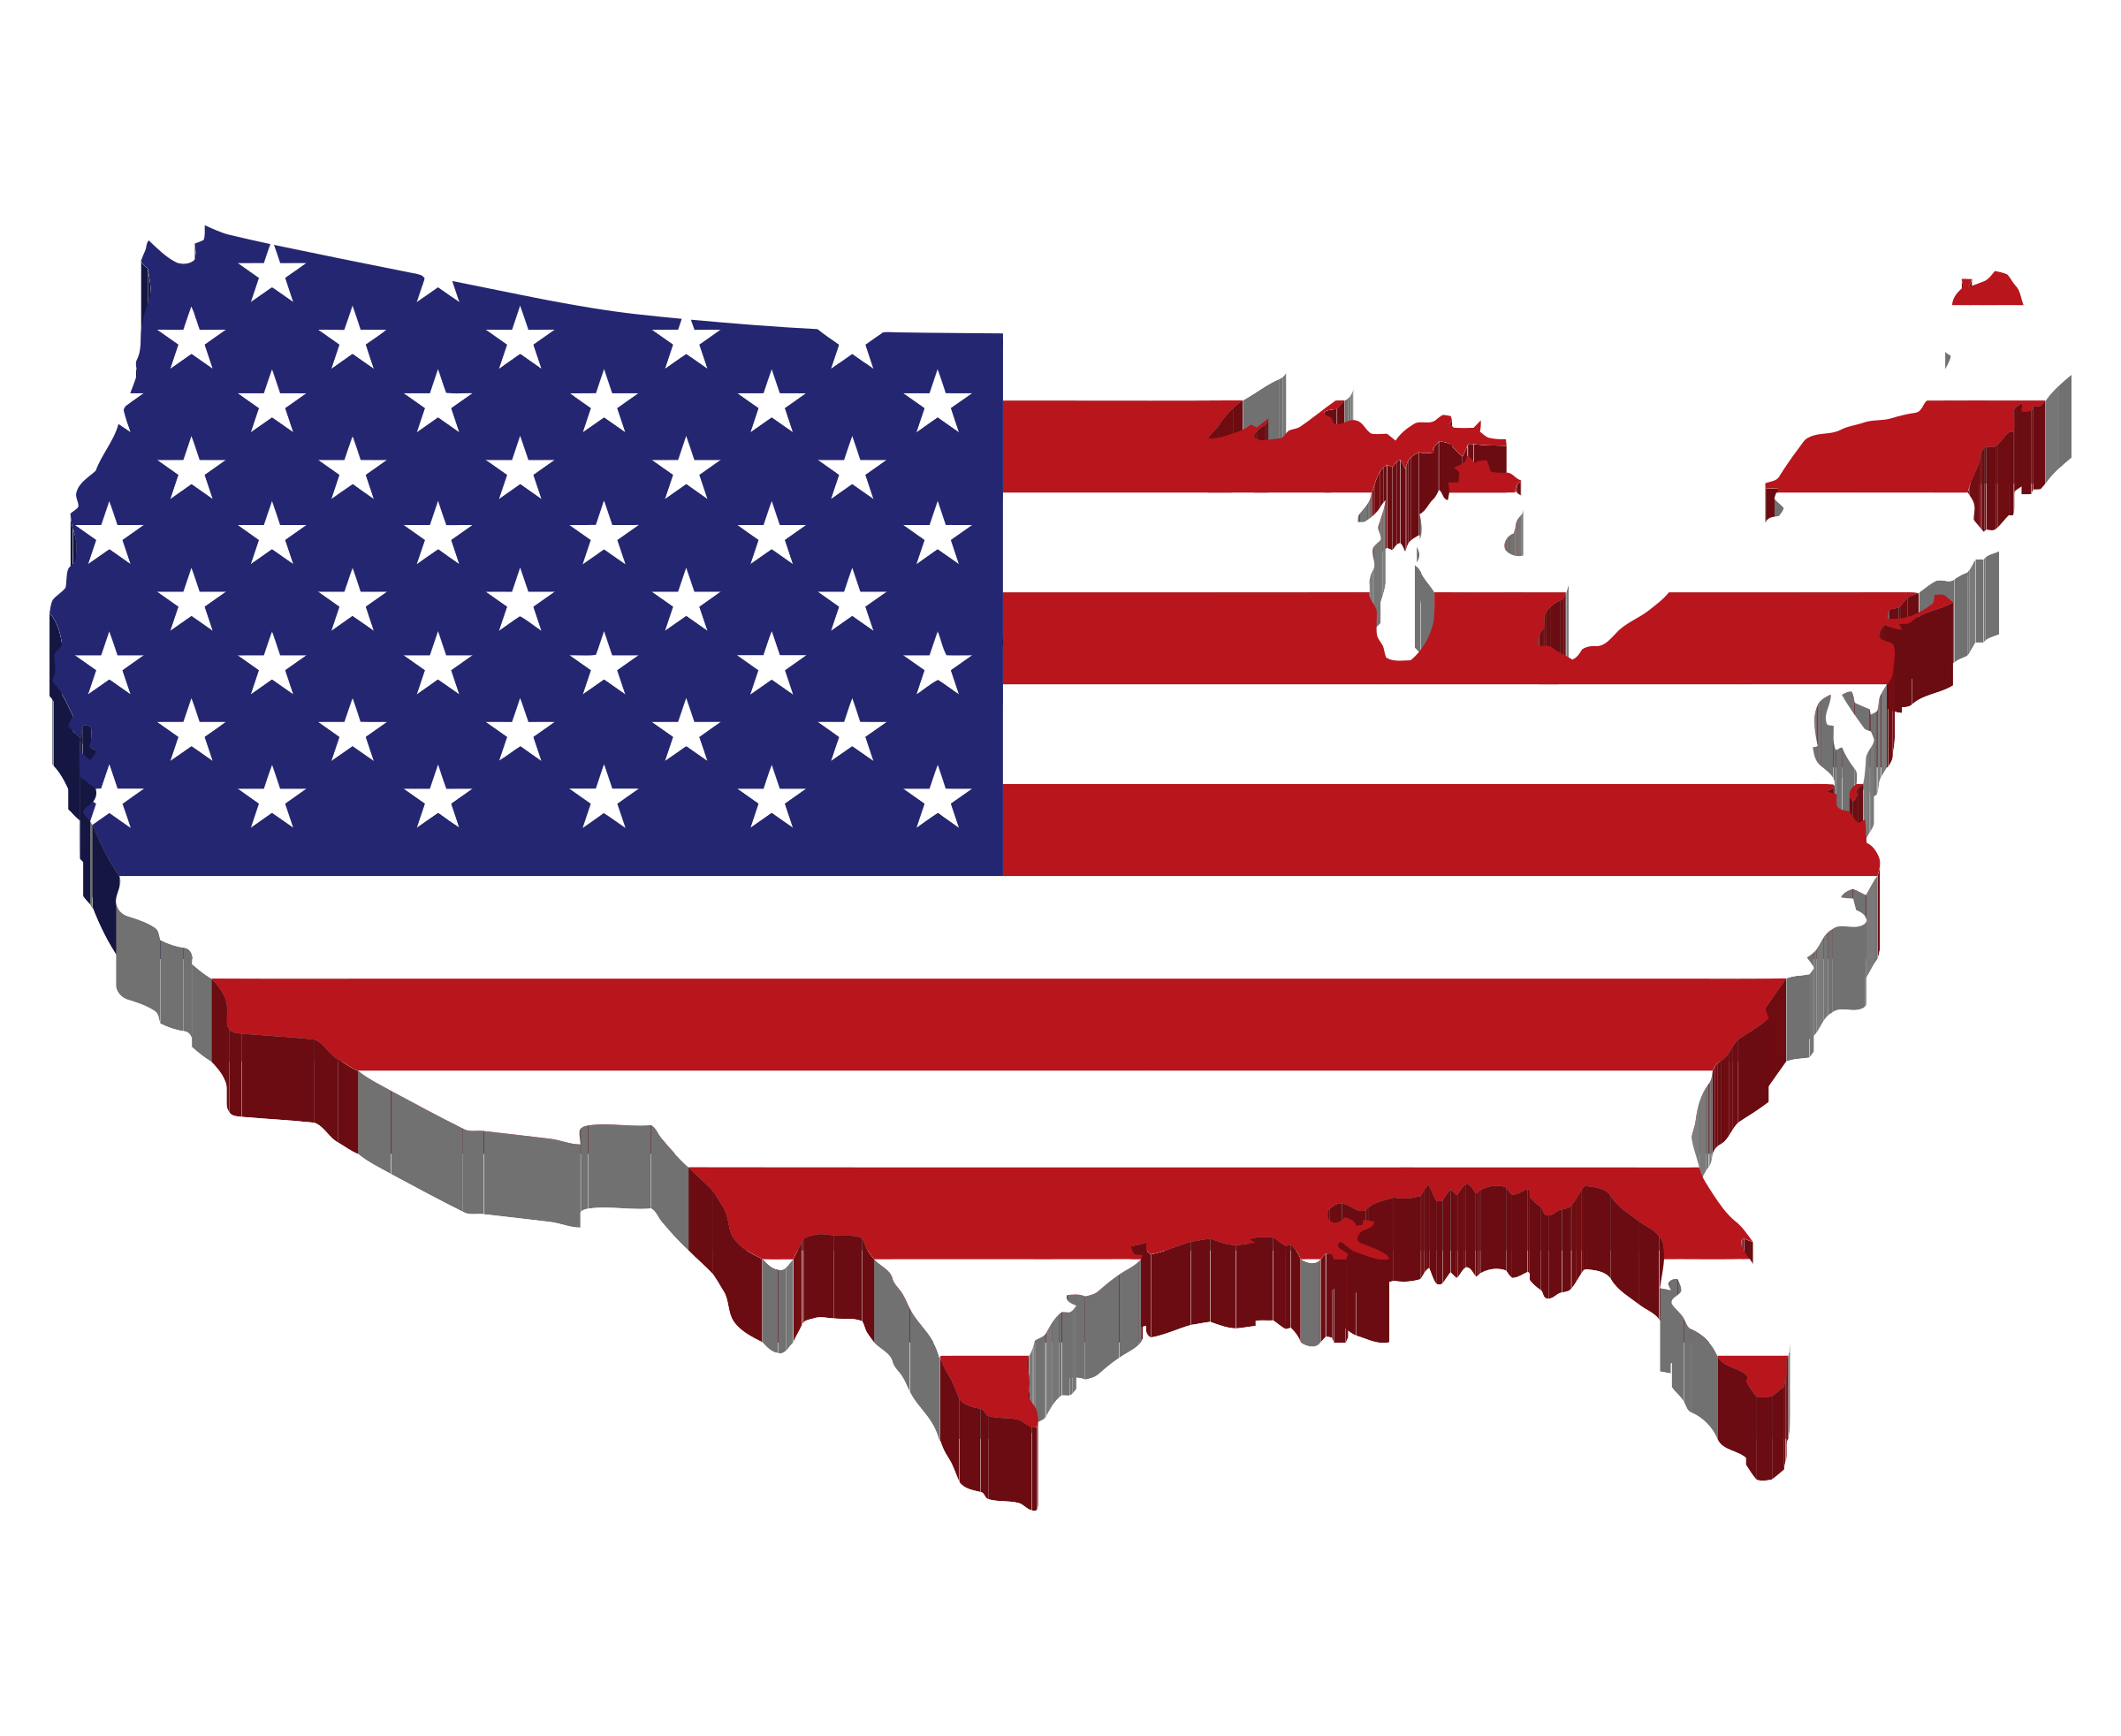 png royalty free America flag big image. Map clipart map united states.